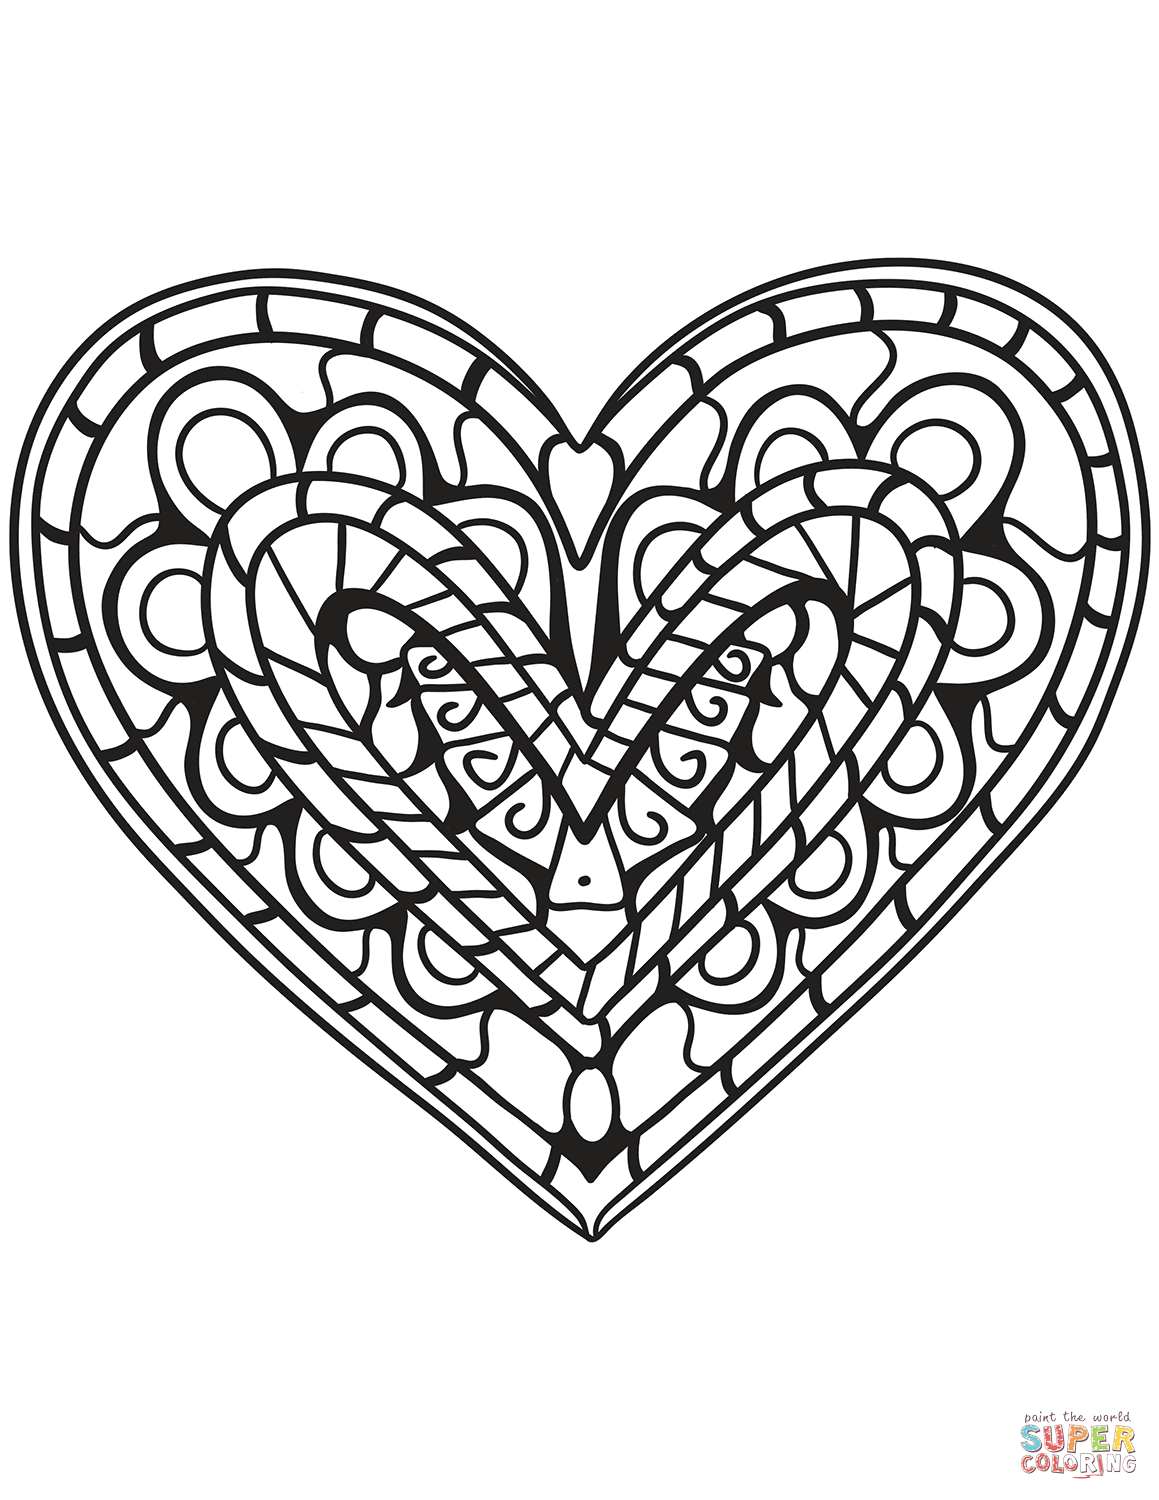 Filigree Heart Drawing at GetDrawings.com | Free for personal use ...